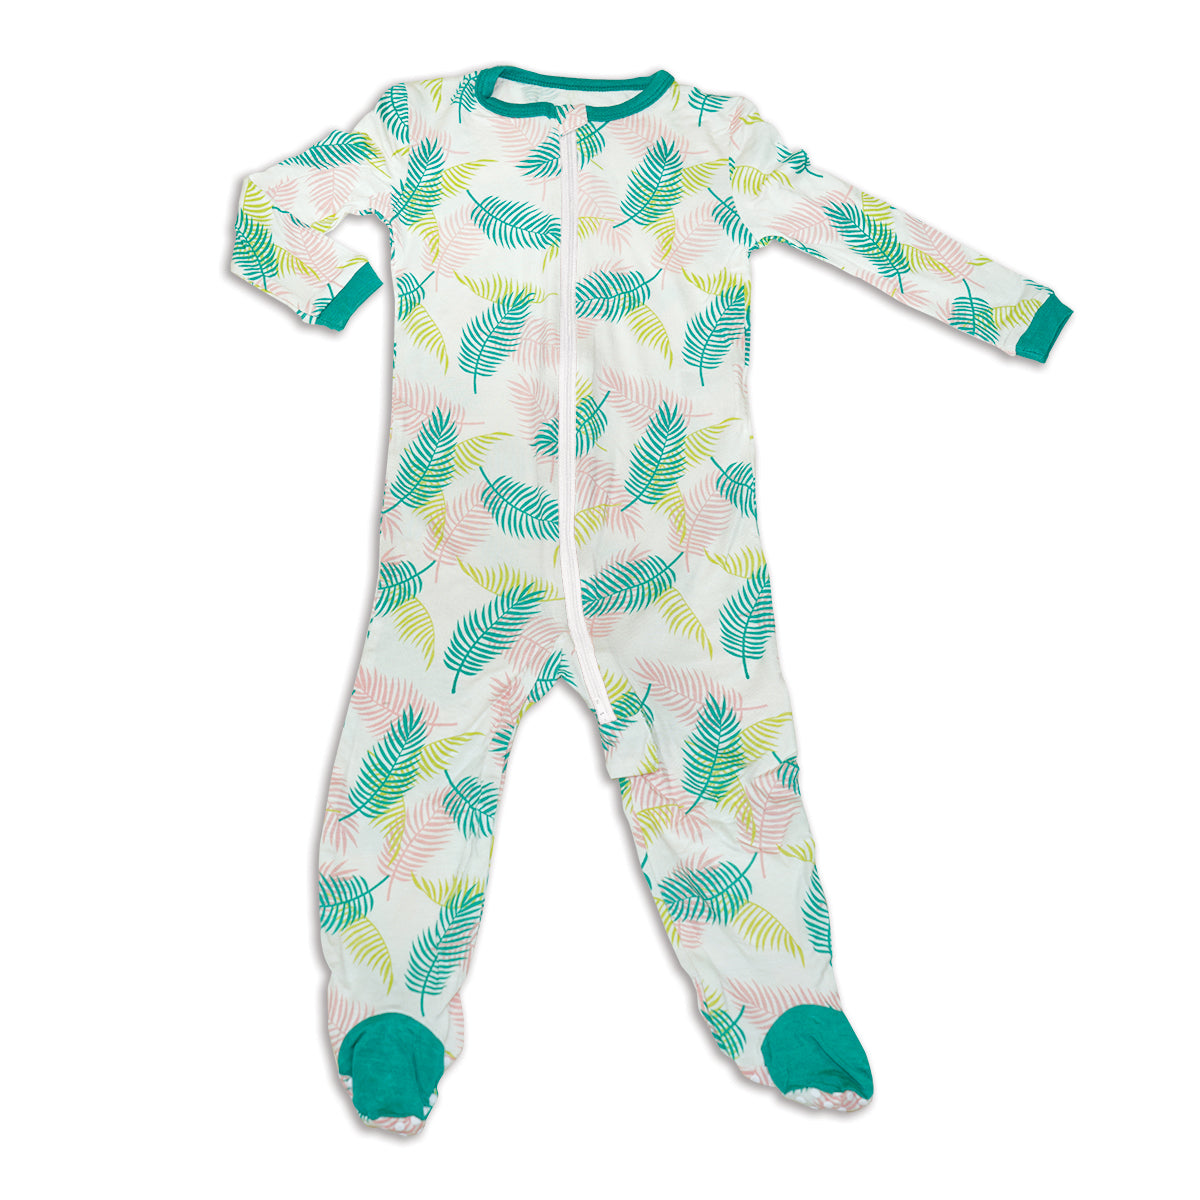 Bamboo Zip up Footed Sleeper (Tropical Palm Print)